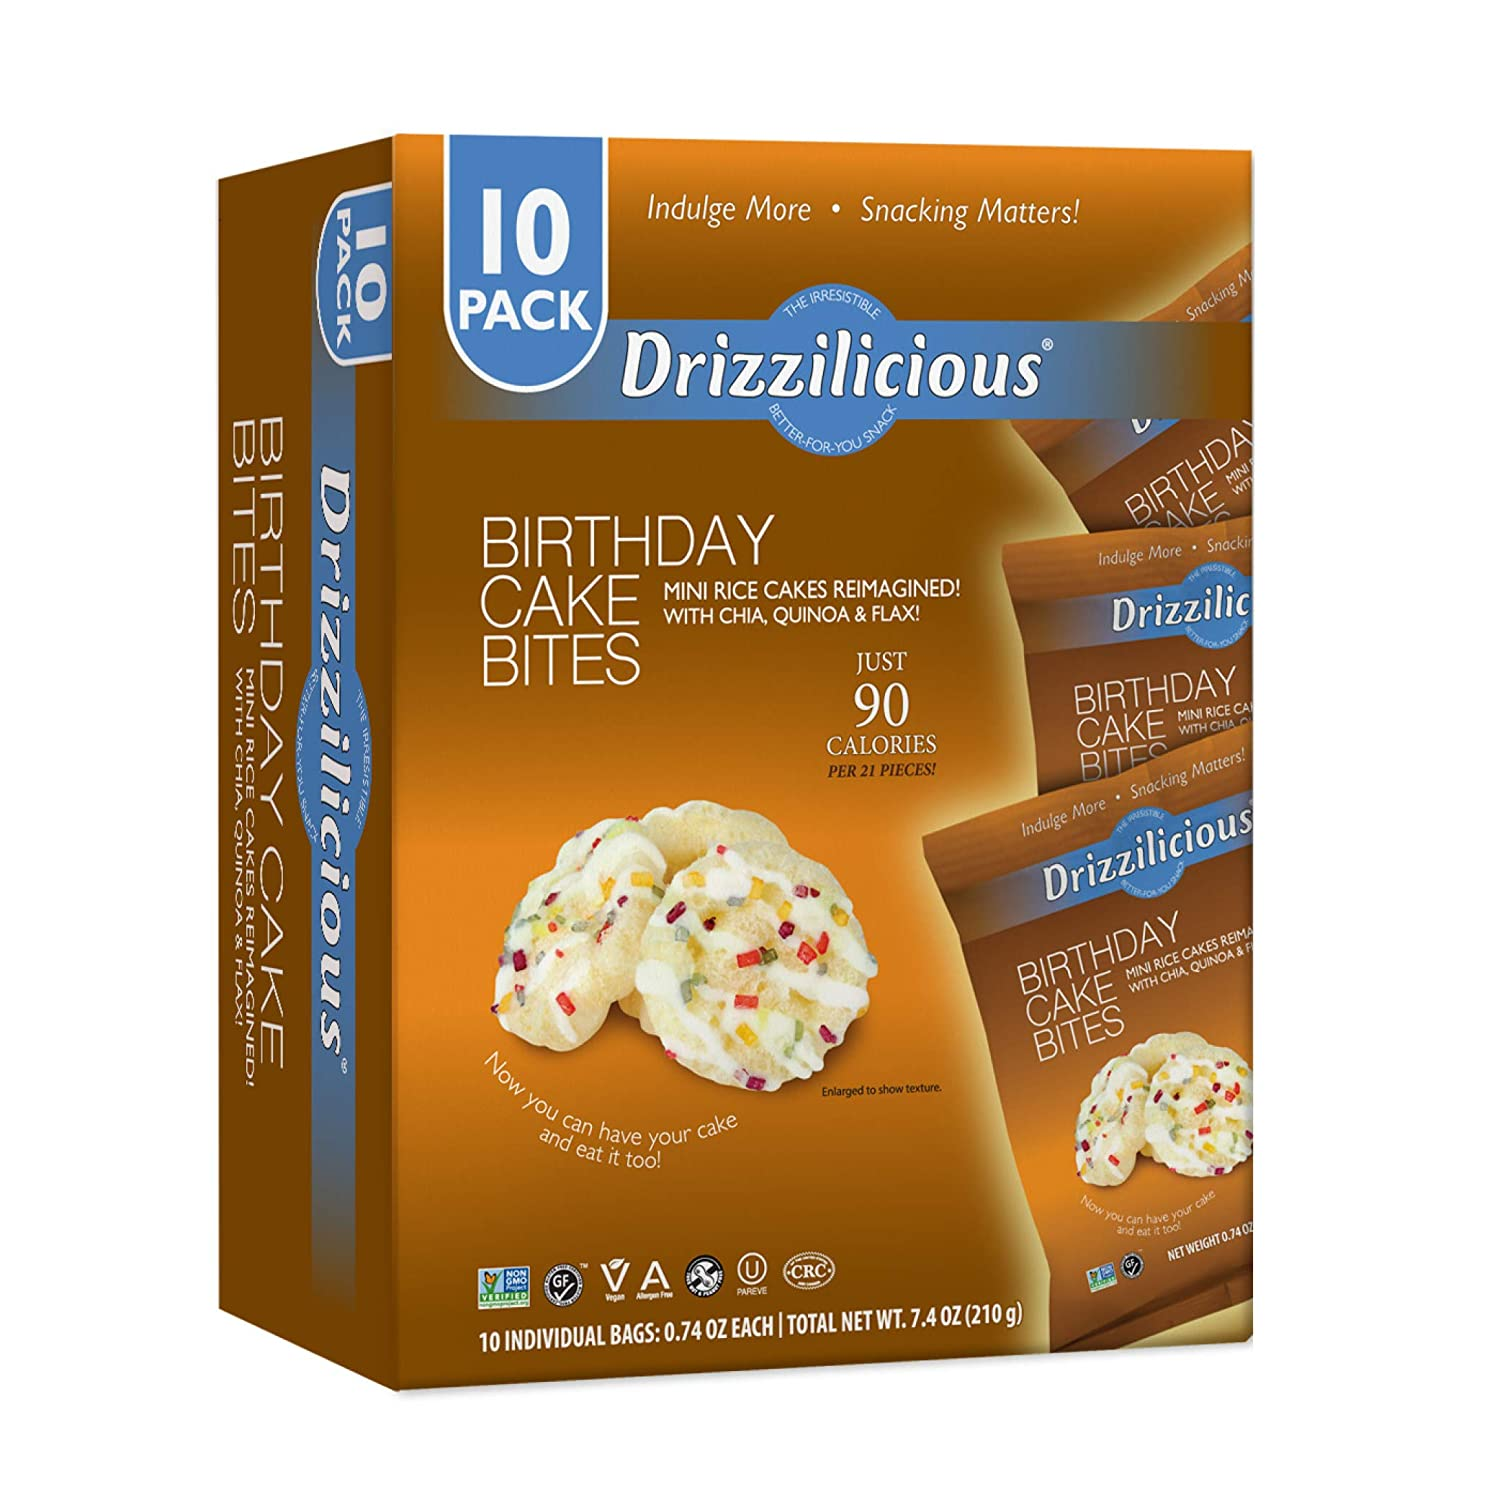 Drizzilicious Birthday Cake Snacks 10 Pack | Gluten Free Mini Snack Cupcake Rice Cakes | Vegan Air Popped Chia, Quinoa, Flax